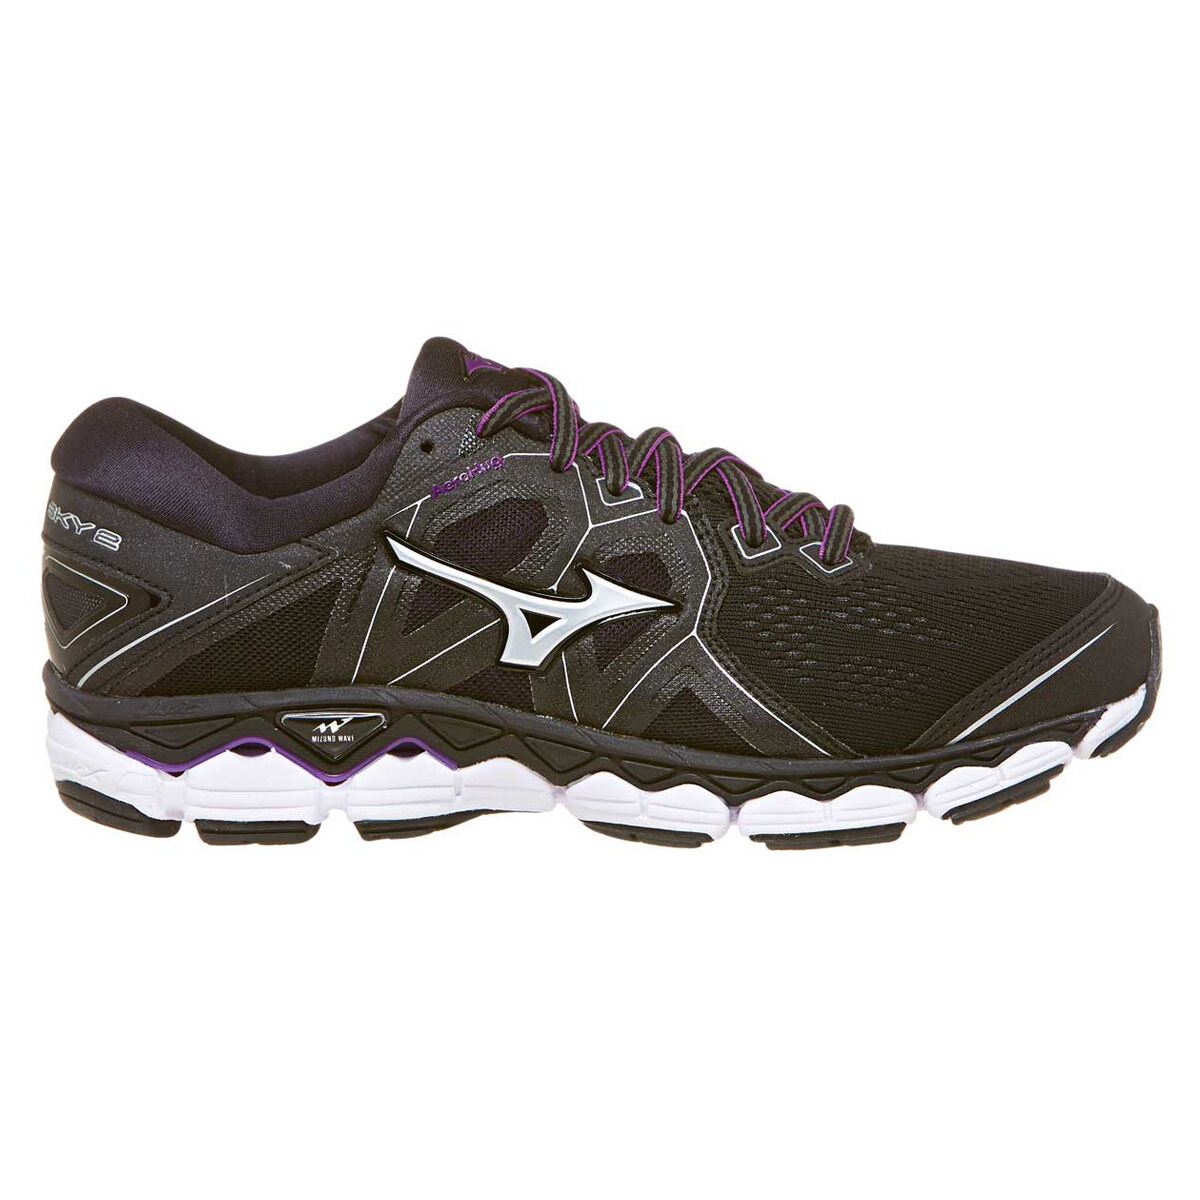 mizuno womens volleyball shoes size 8 x 1 jacket long cover